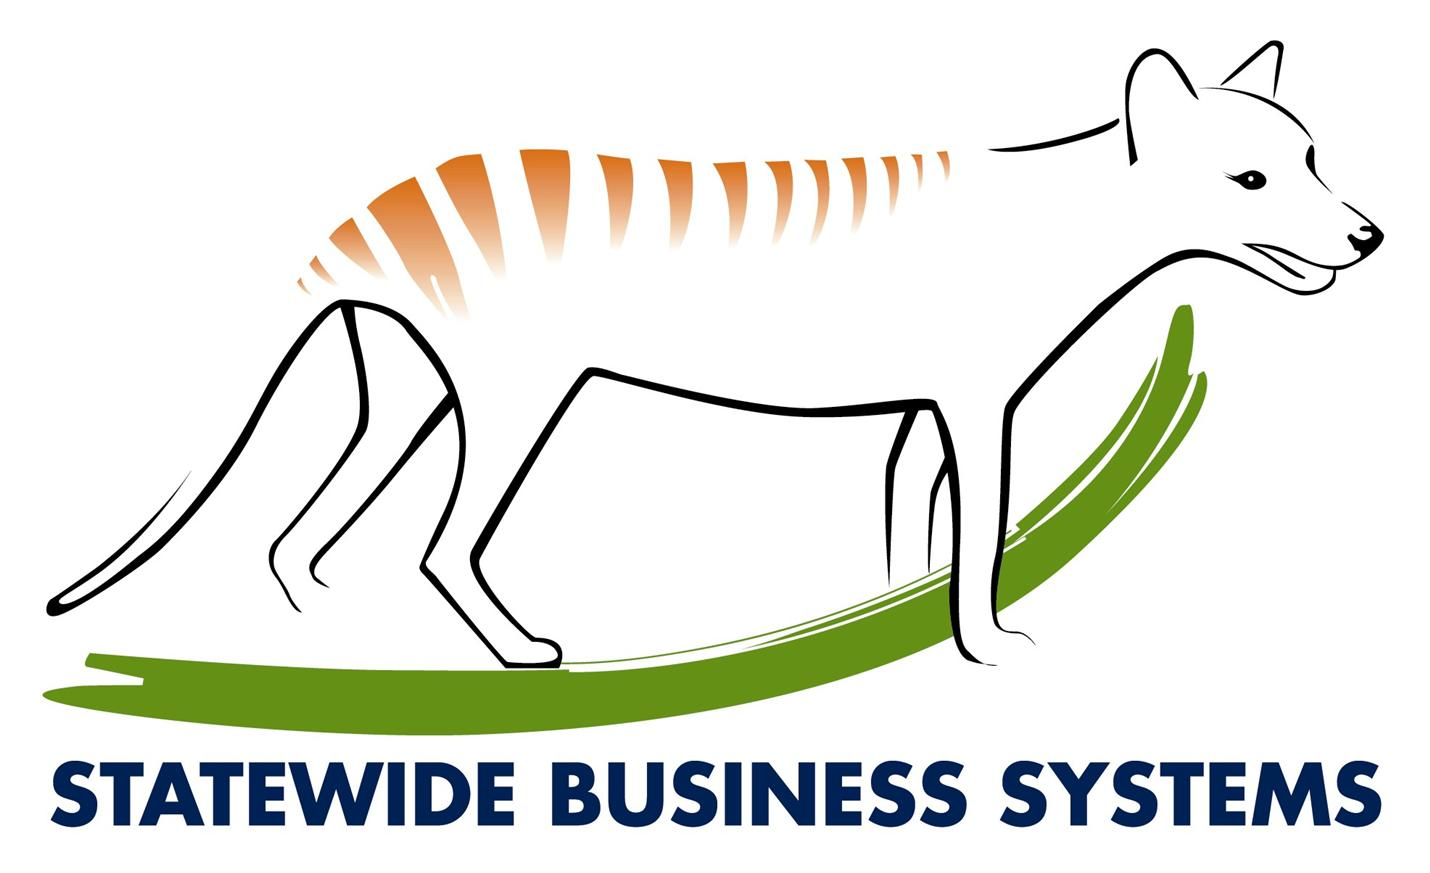 Statewide Business Systems